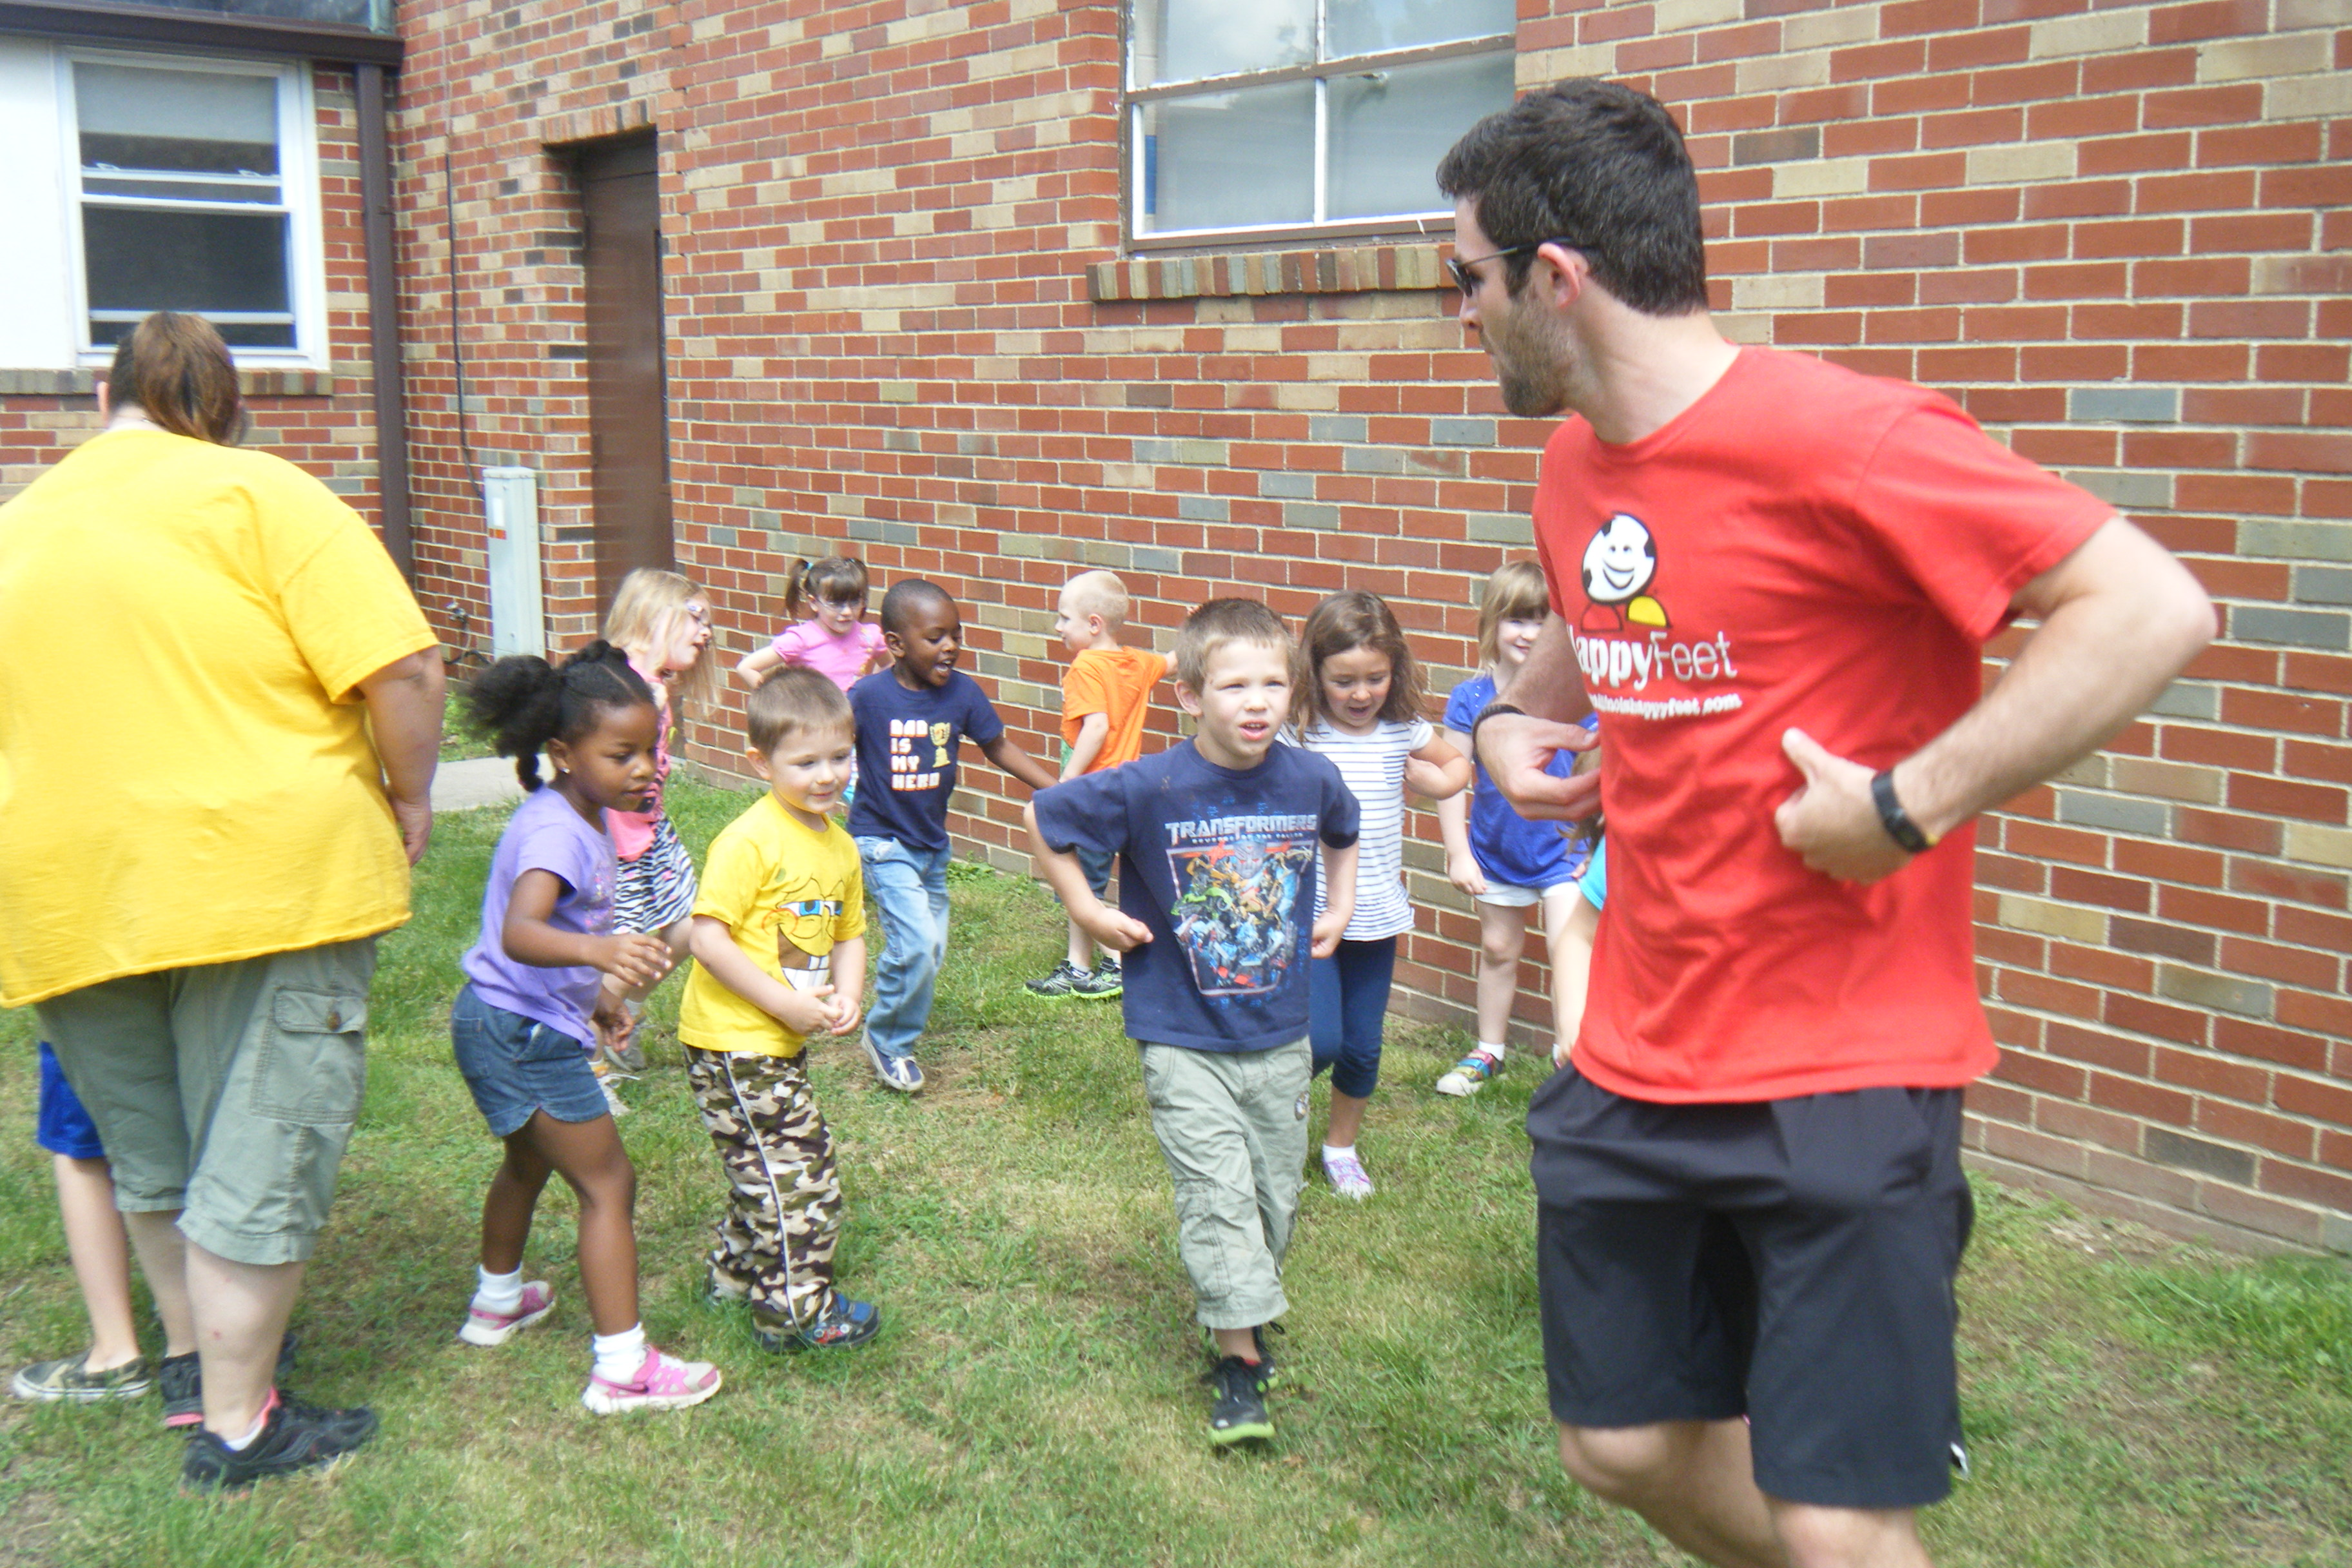 Children learning to play soccer in a safe environment.